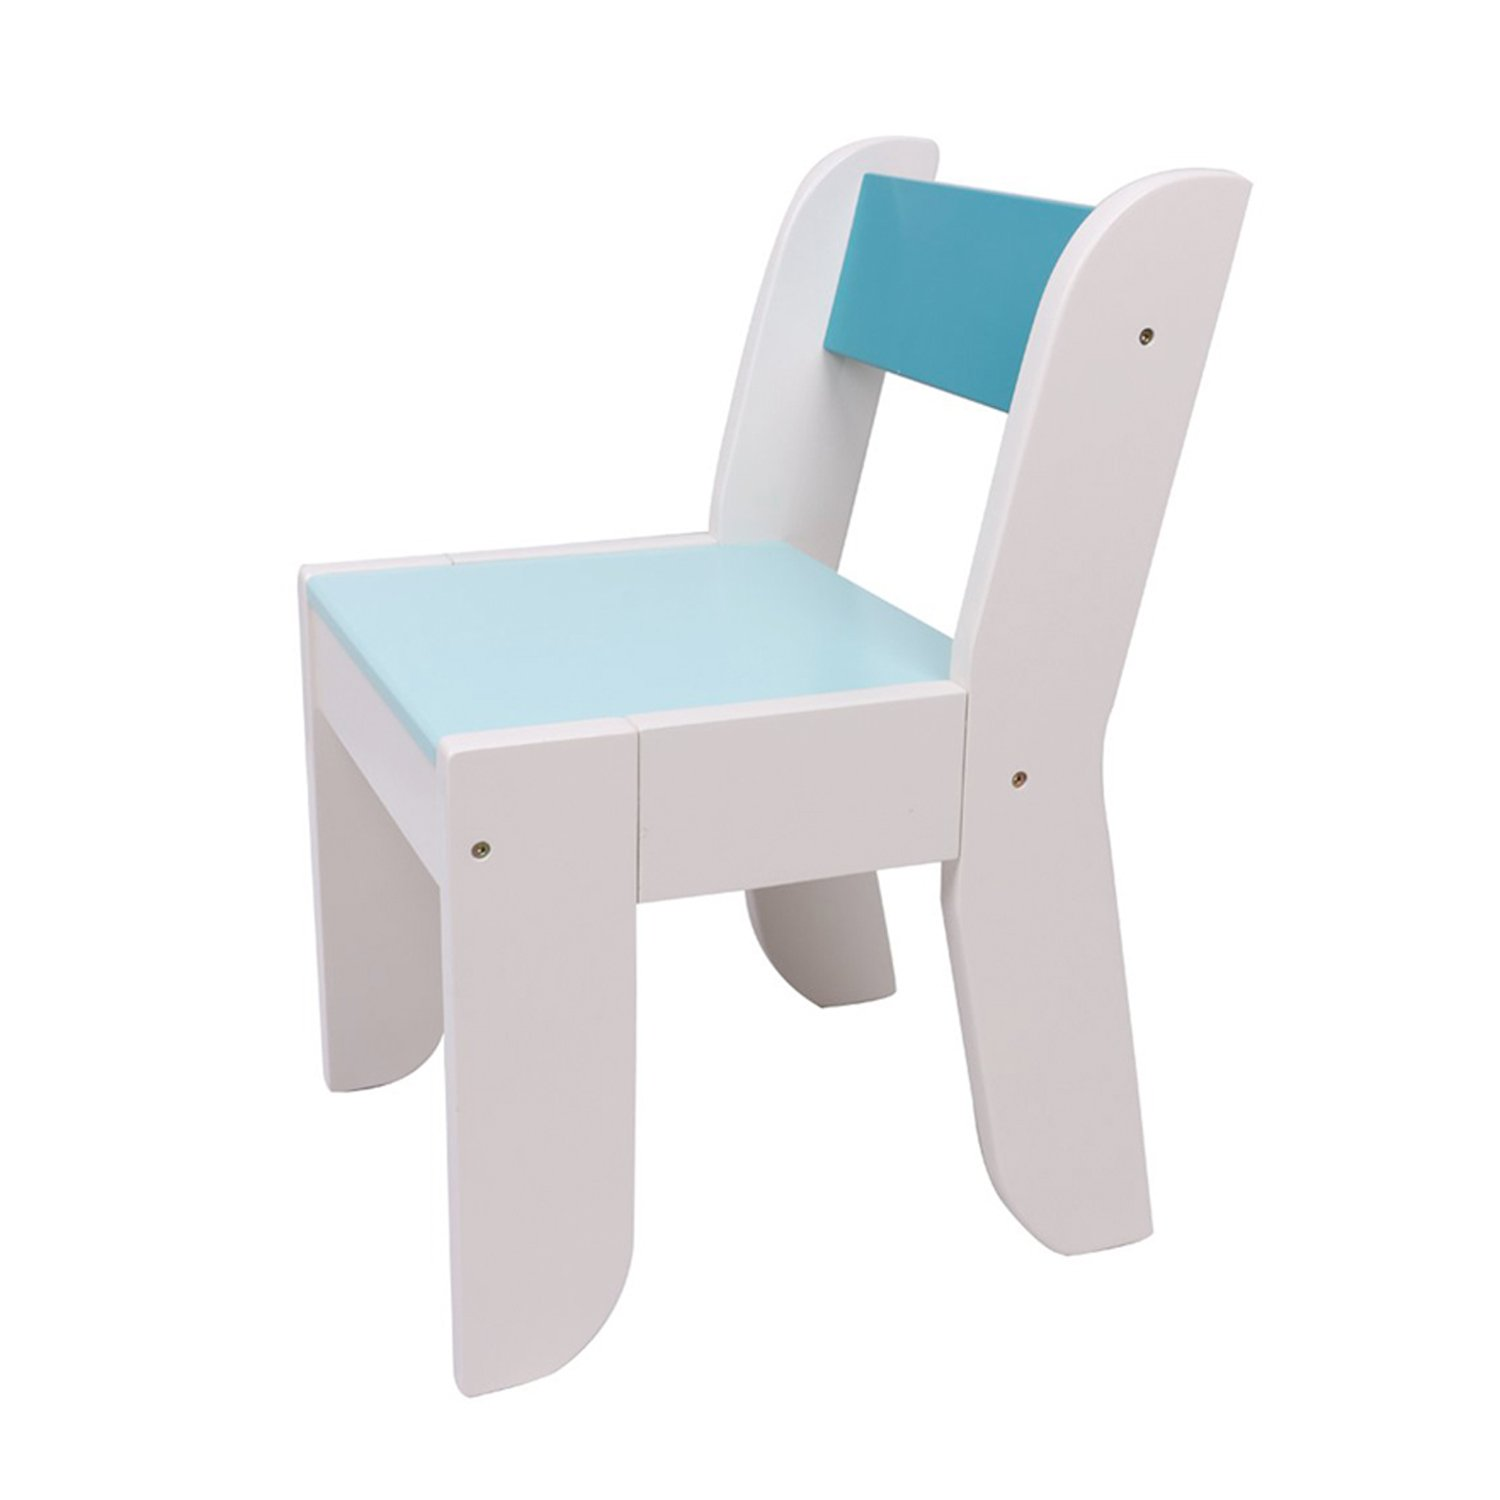 Labebe Chair for Kids Red for 1 to 5 Years Old Kids, Pair with Red Apple Table Set, Solid Wood, Use for Painting/Reading/Group Play in Classroom & Home, Creative Birthday Gift